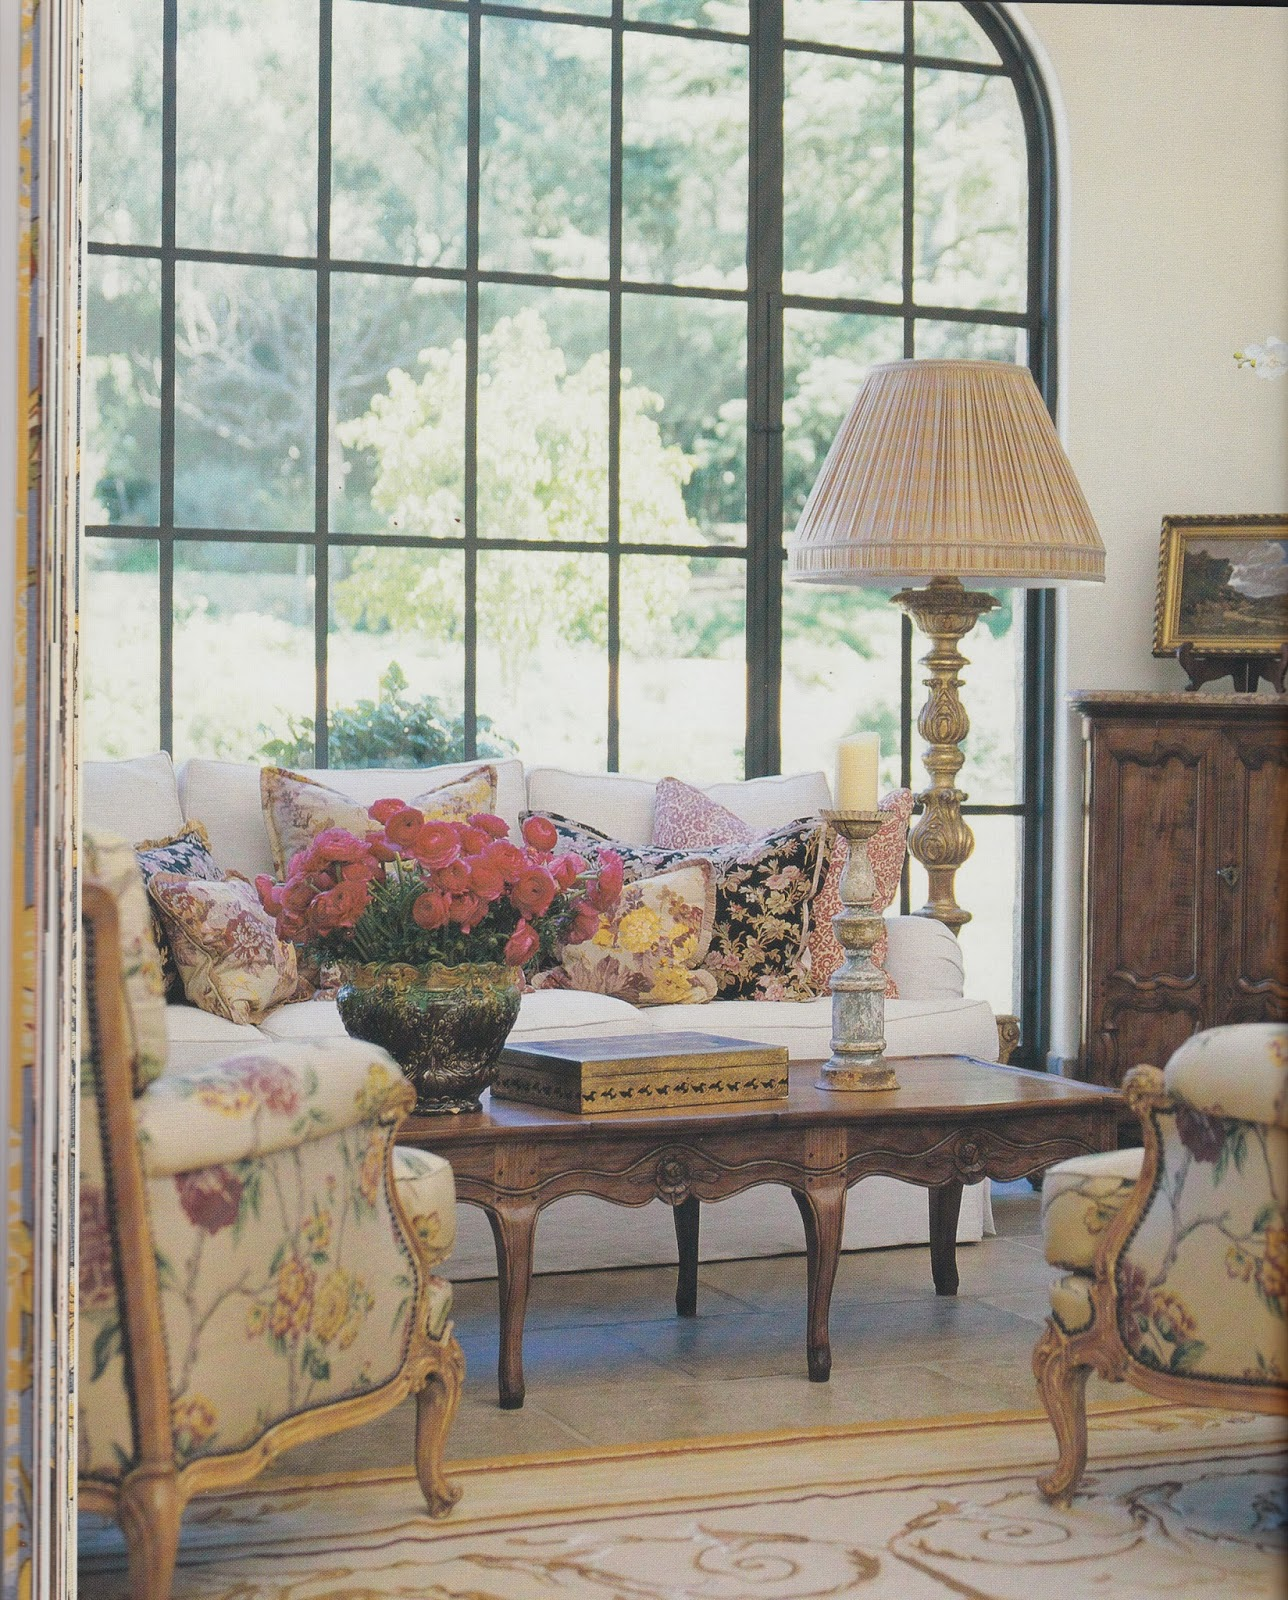 Hydrangea Hill Cottage French Country Decorating: Hydrangea Hill Cottage: French Country